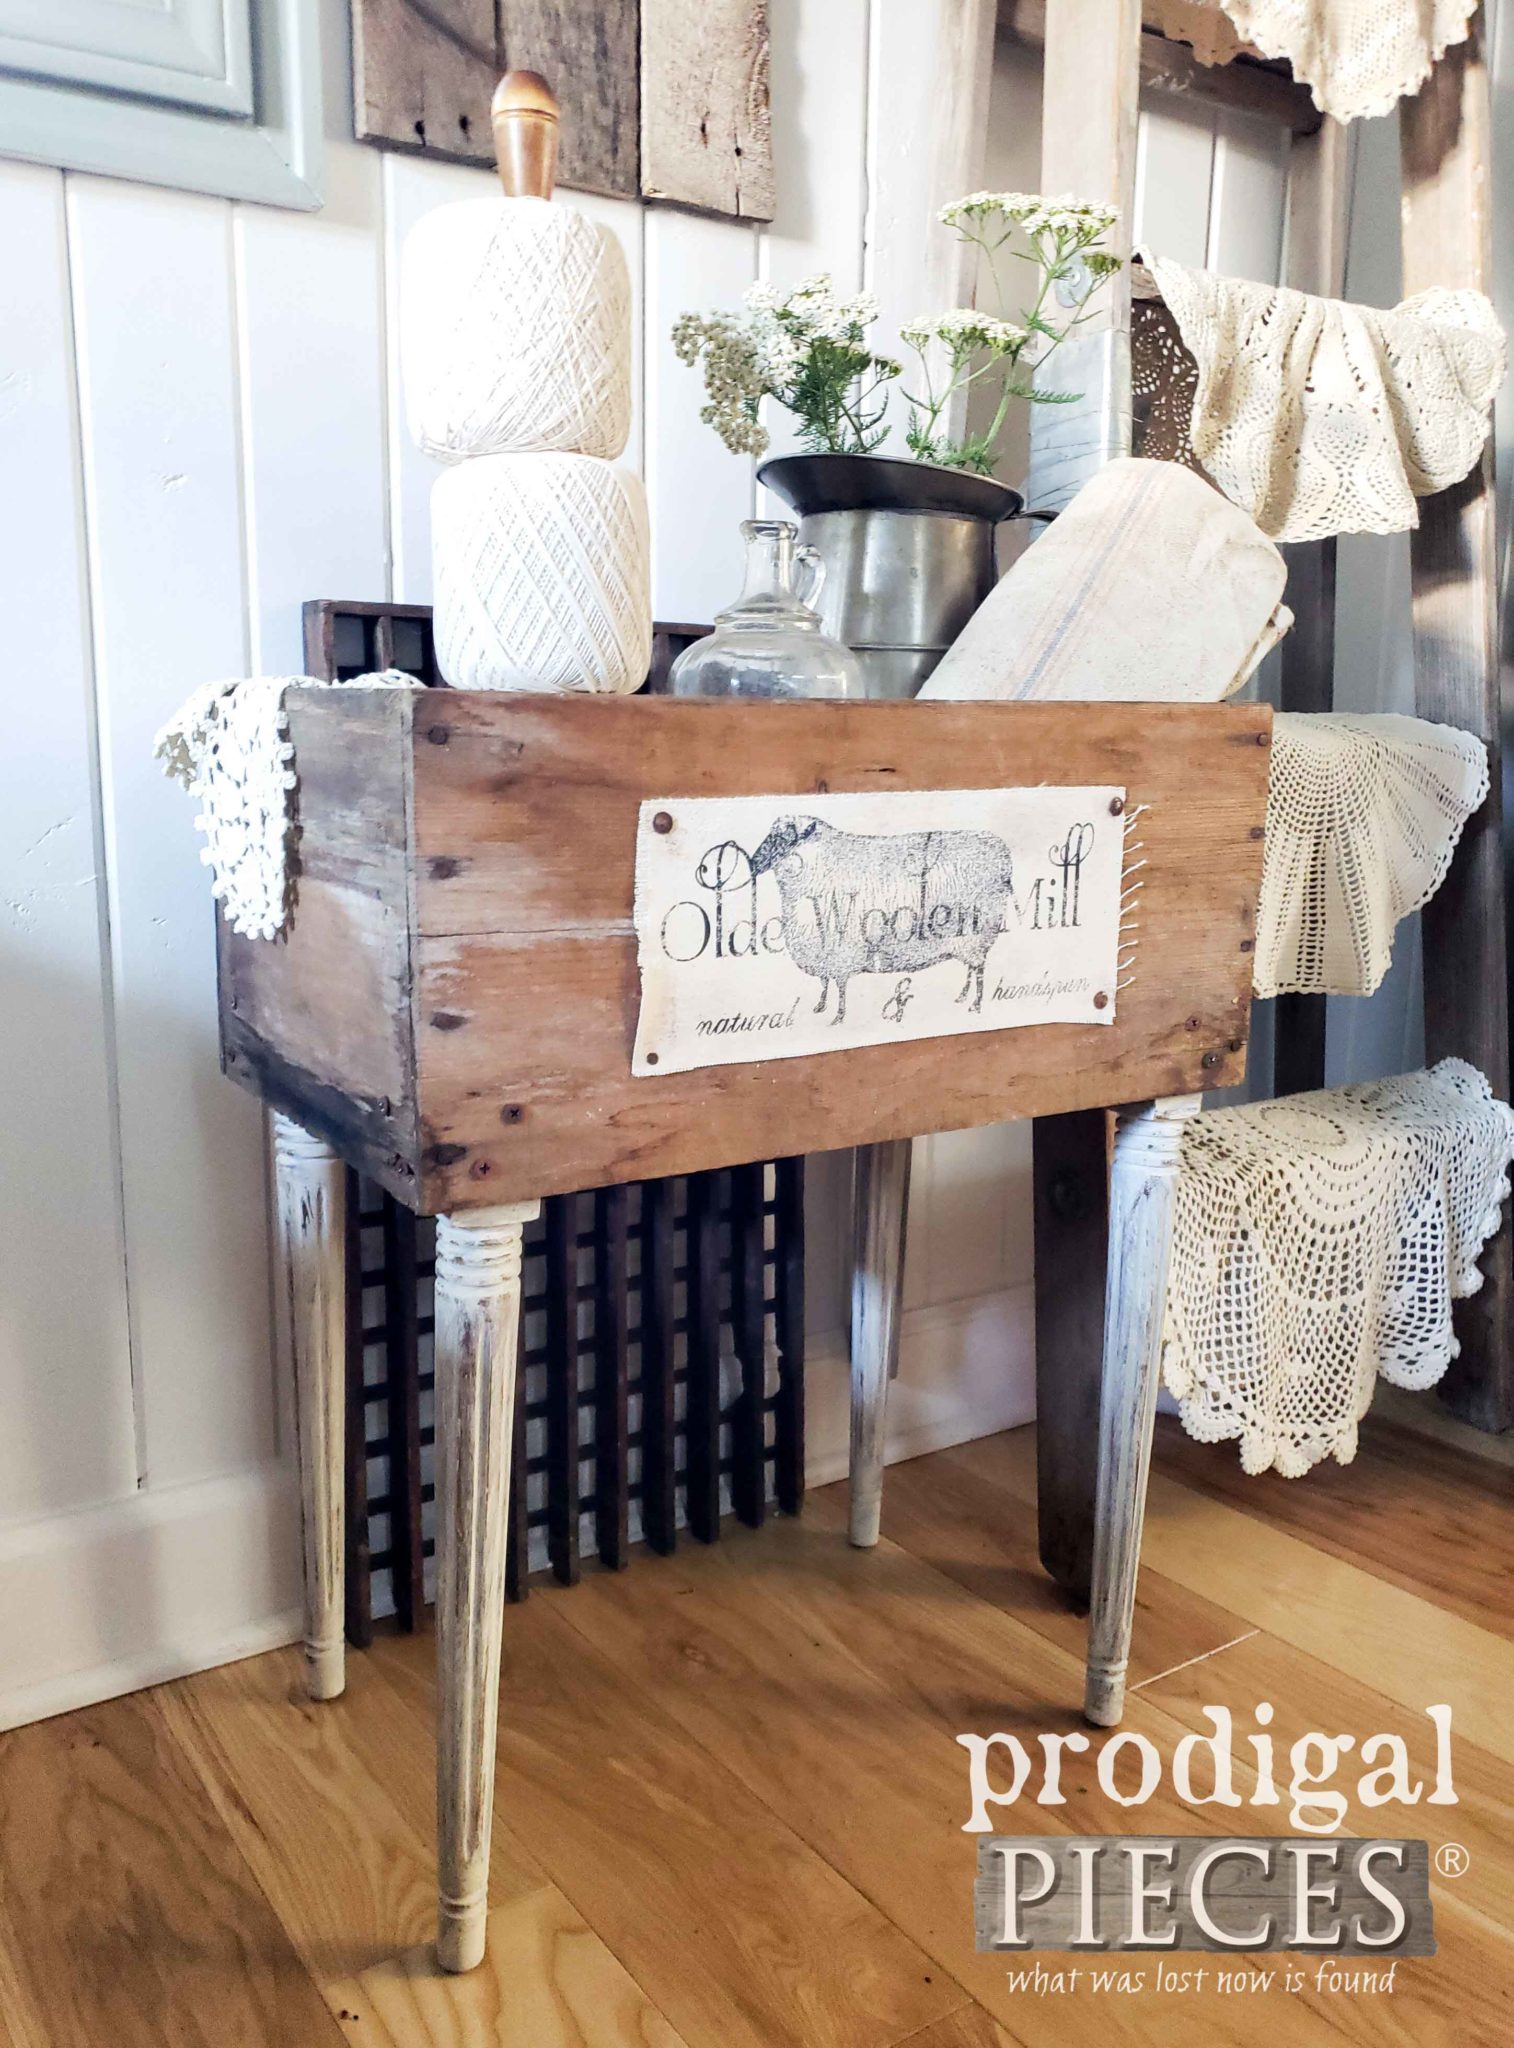 Handmade Farmhouse Crate Table by Larissa of Prodigal Pieces | prodigalpieces #prodigalpieces #diy #furniture #home #farmhouse #homedecor